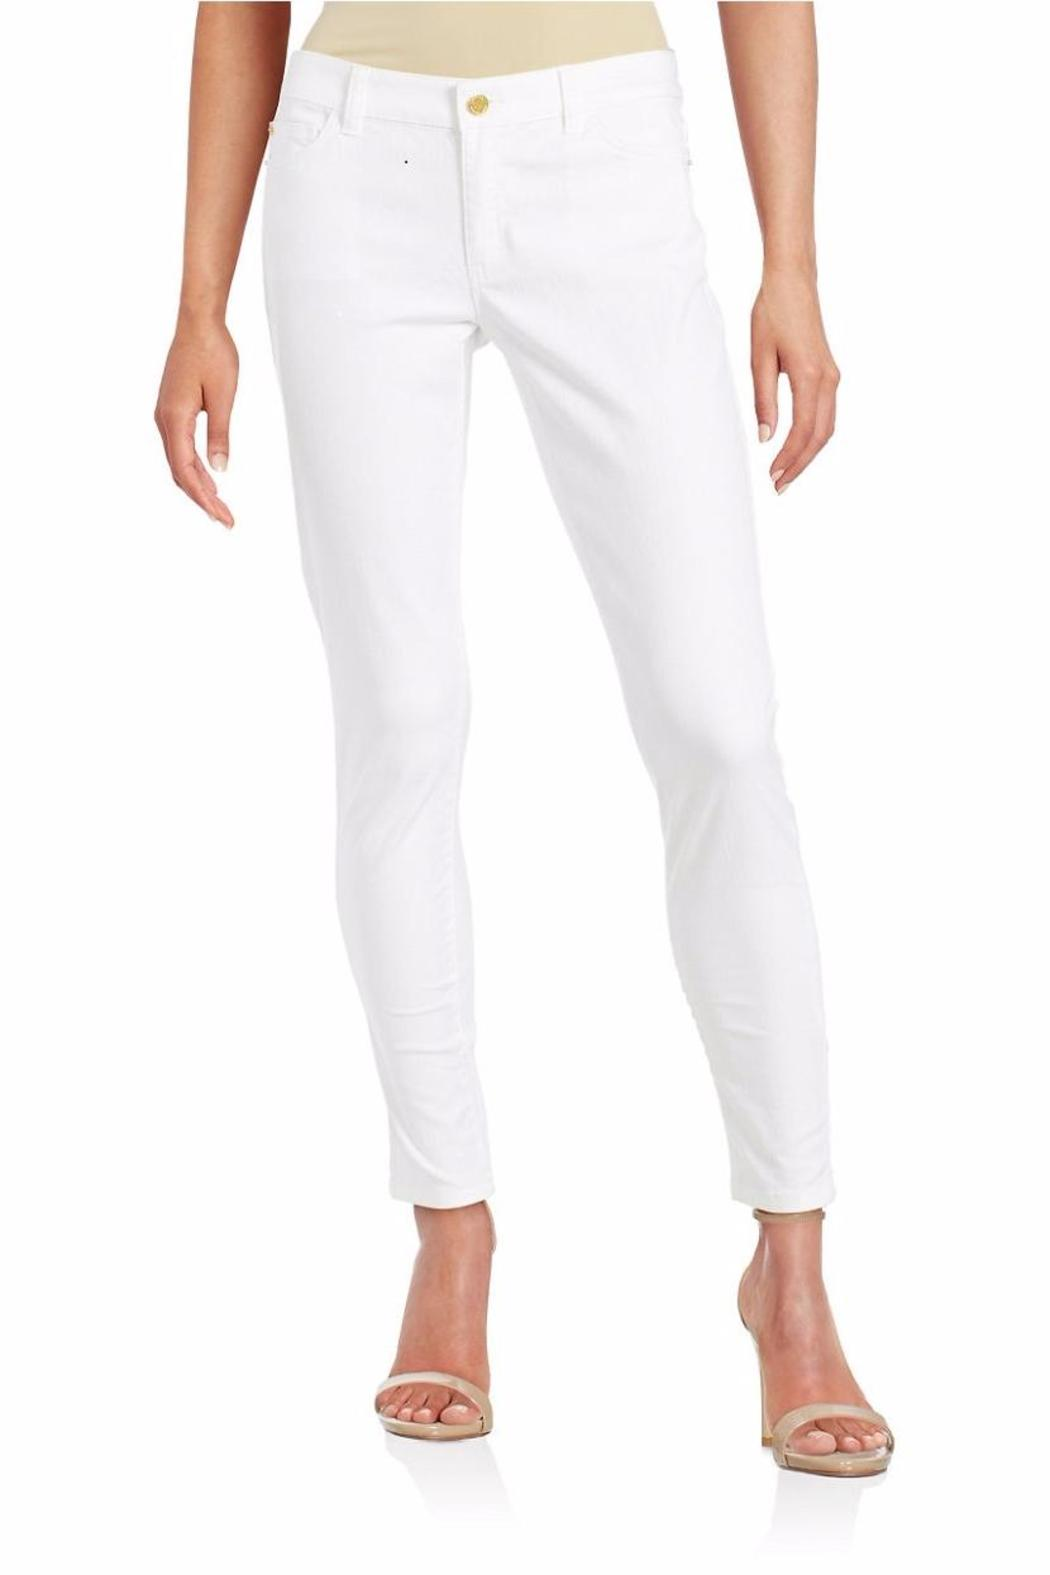 93d714b6ca36 Michael by Michael Kors Cropped Skinny Jeans from Toronto by The ...